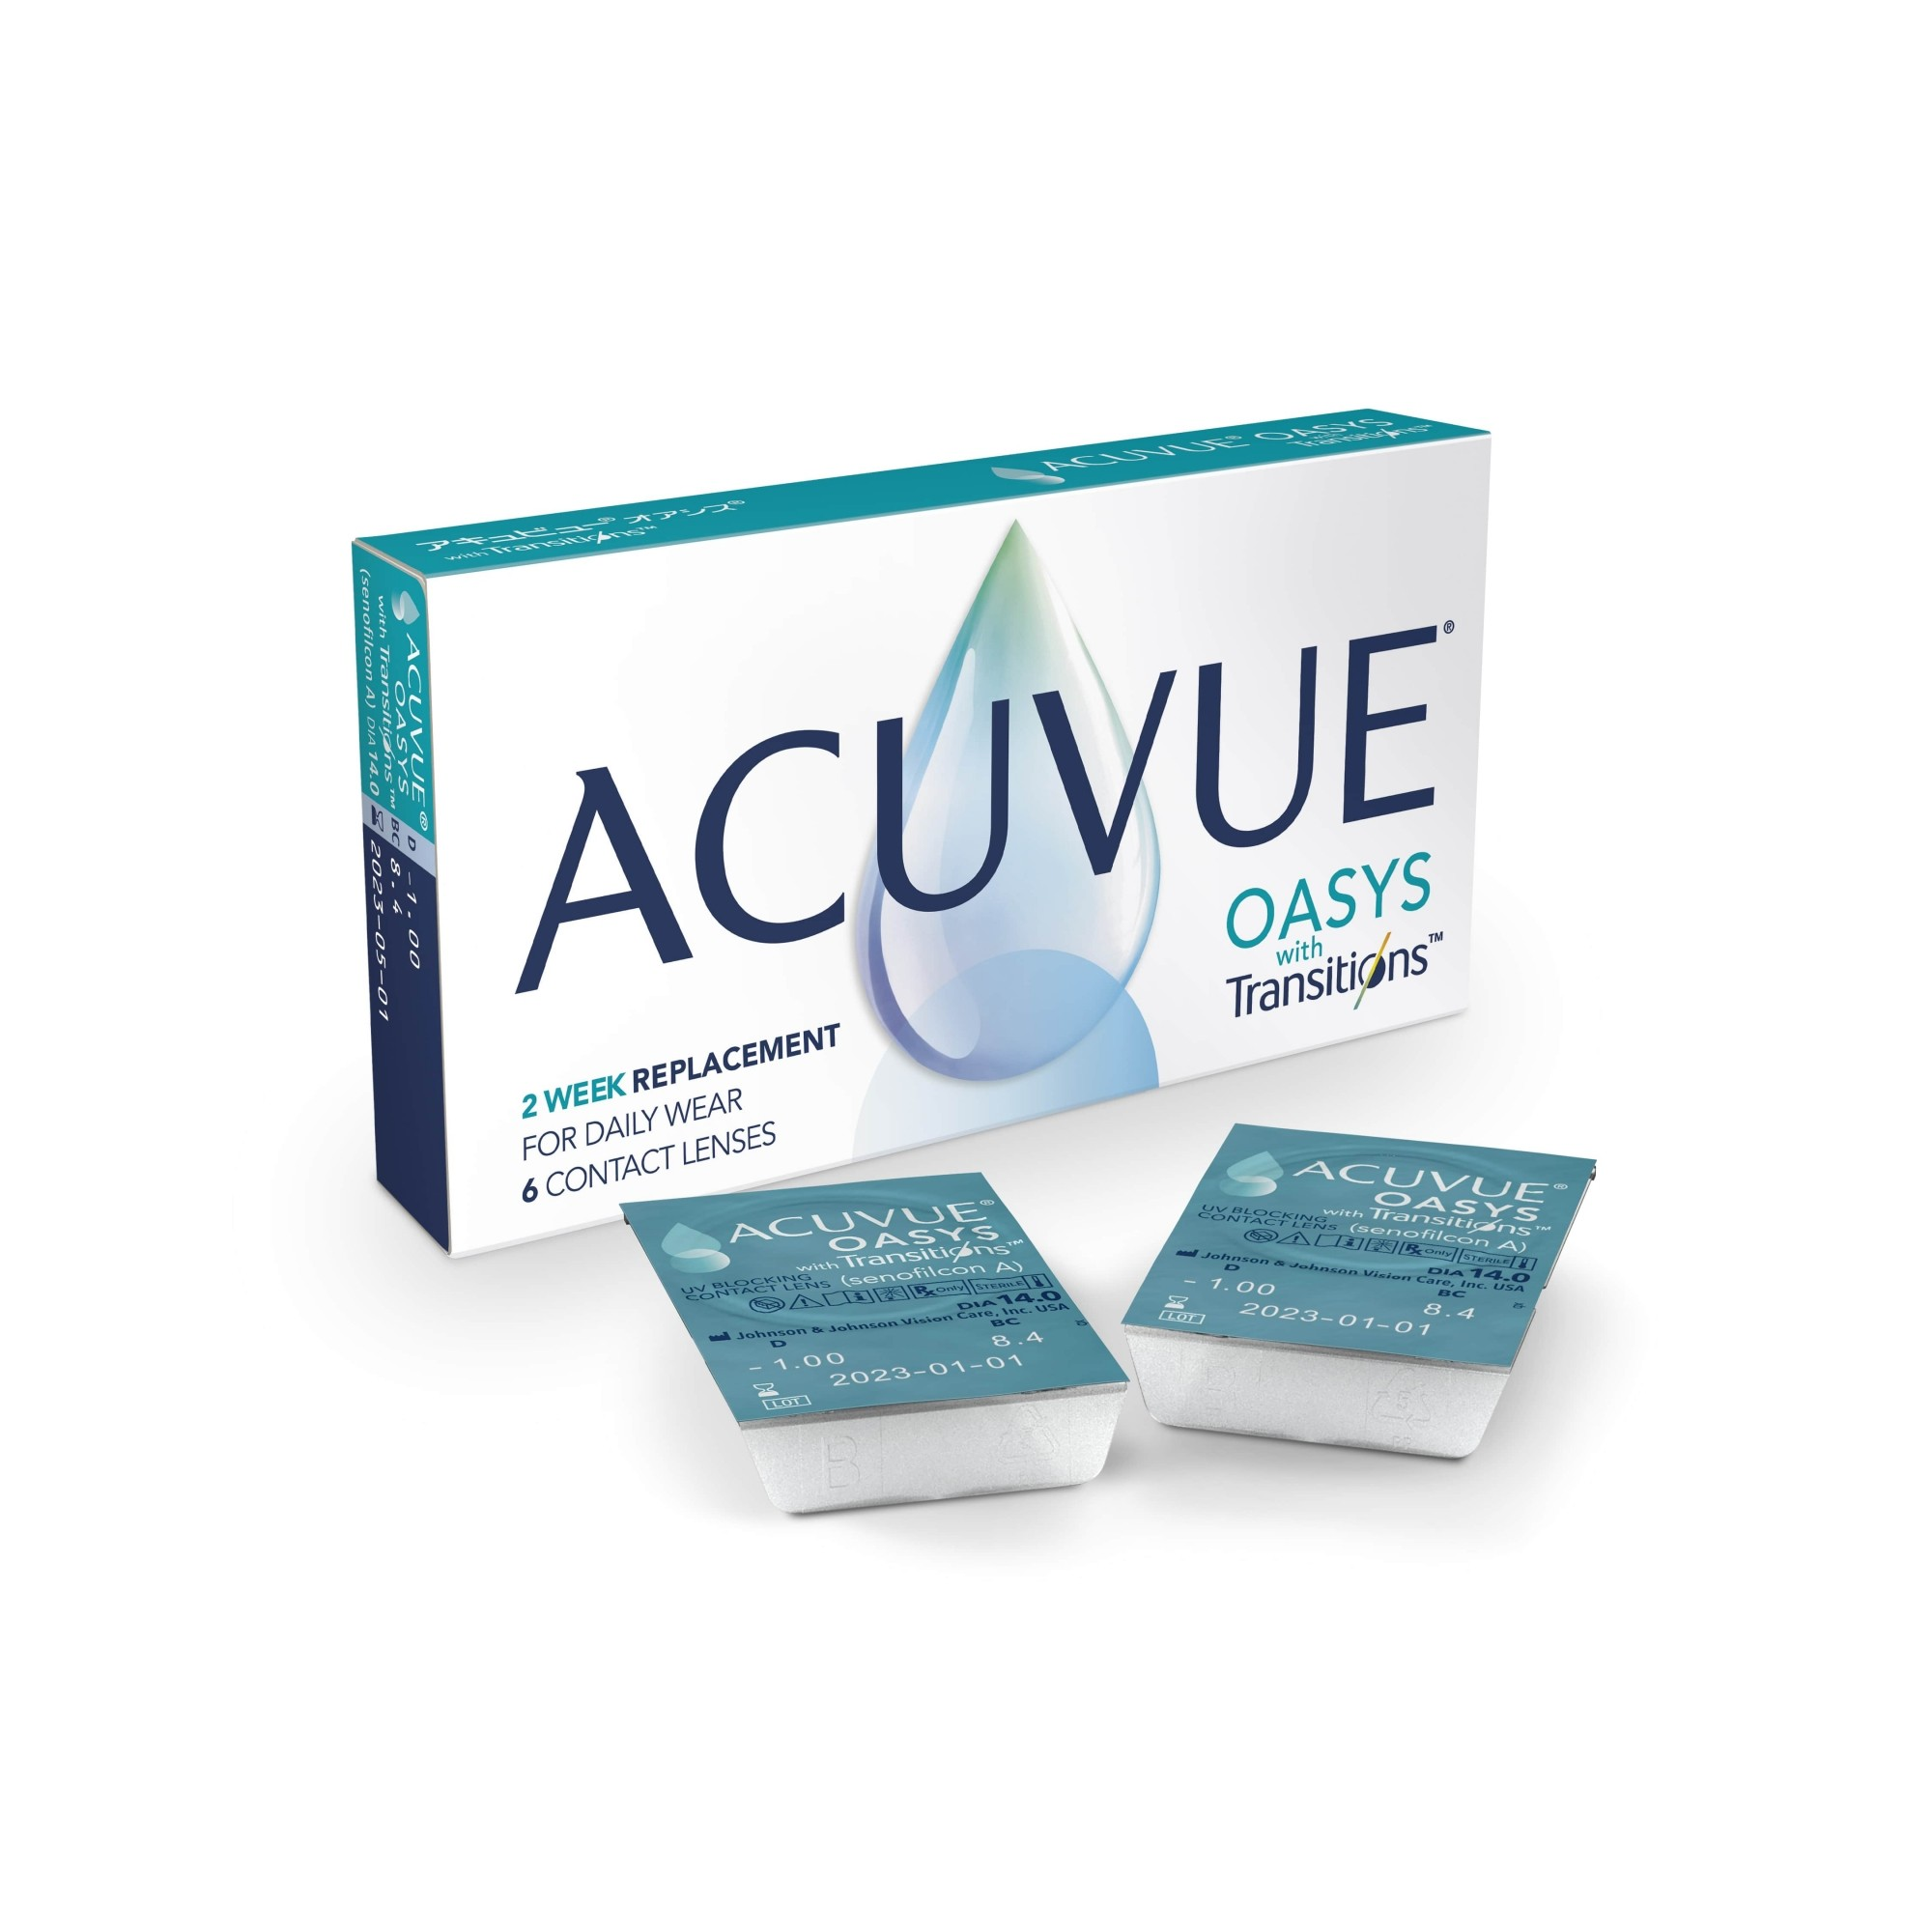 Acuvue Oasys Com Transitions Leve 4 pague 3